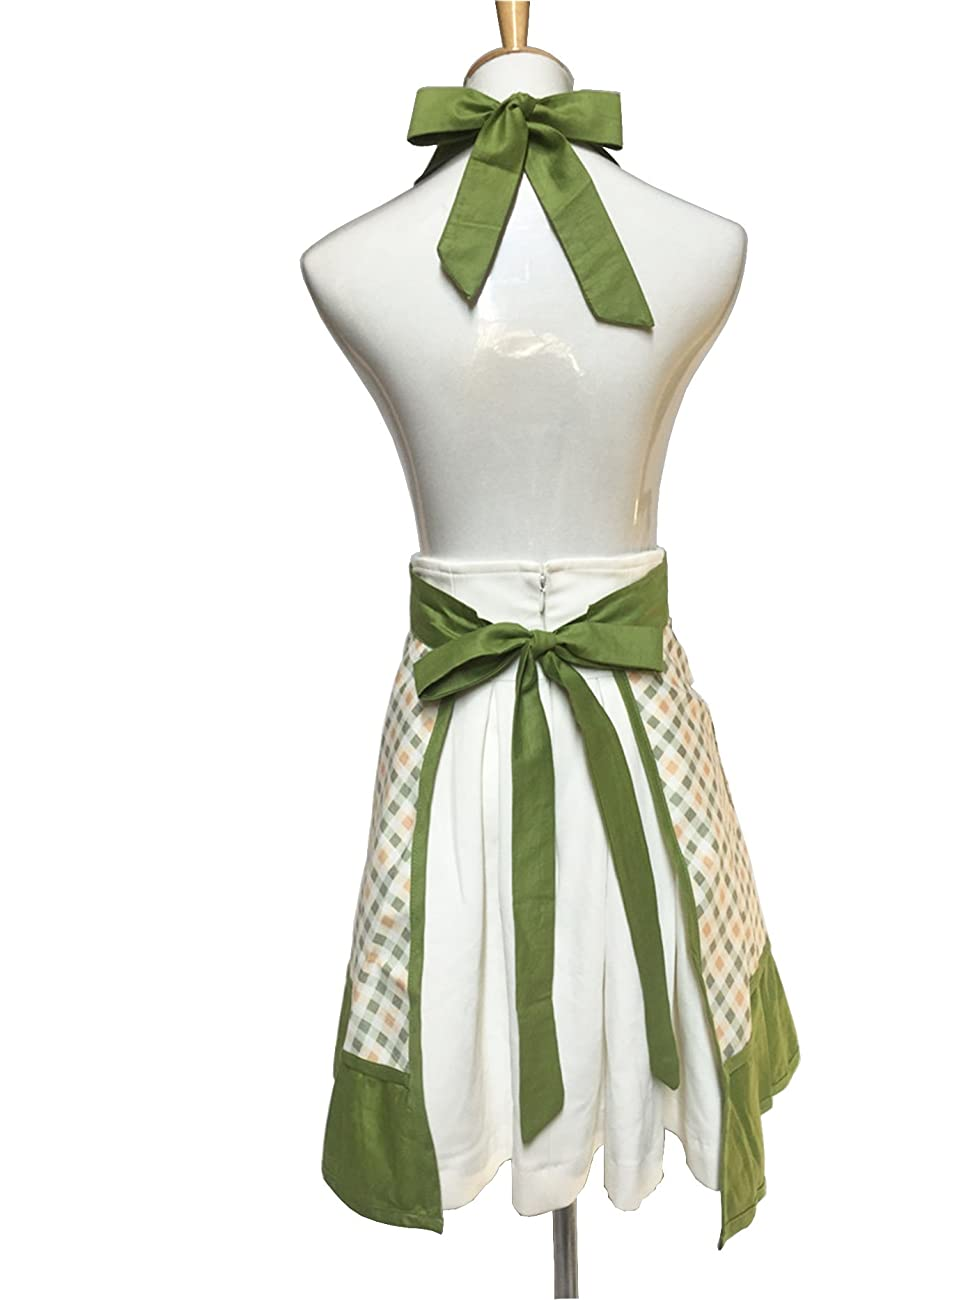 Lovely Sweetheart Retro Kitchen Aprons Woman Girl Cotton Cooking Salon Pinafore Vintage Apron Dress with Pocket,Green 2